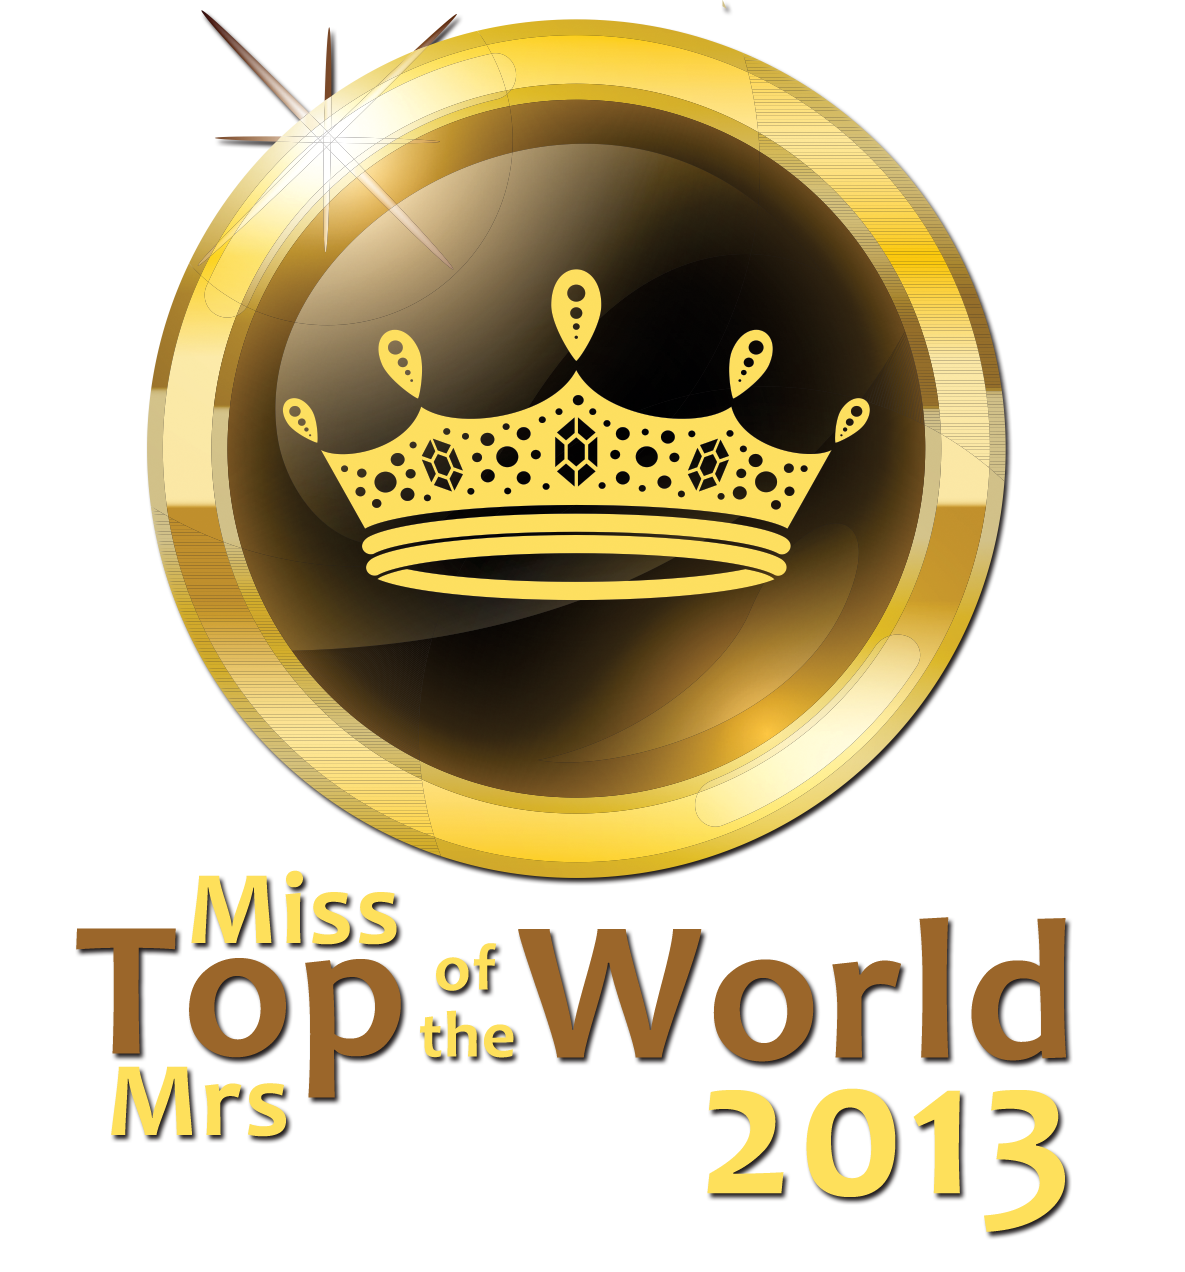 Miss Top of the World 2013 Watch Miss Top of the World for Free at FilmOn